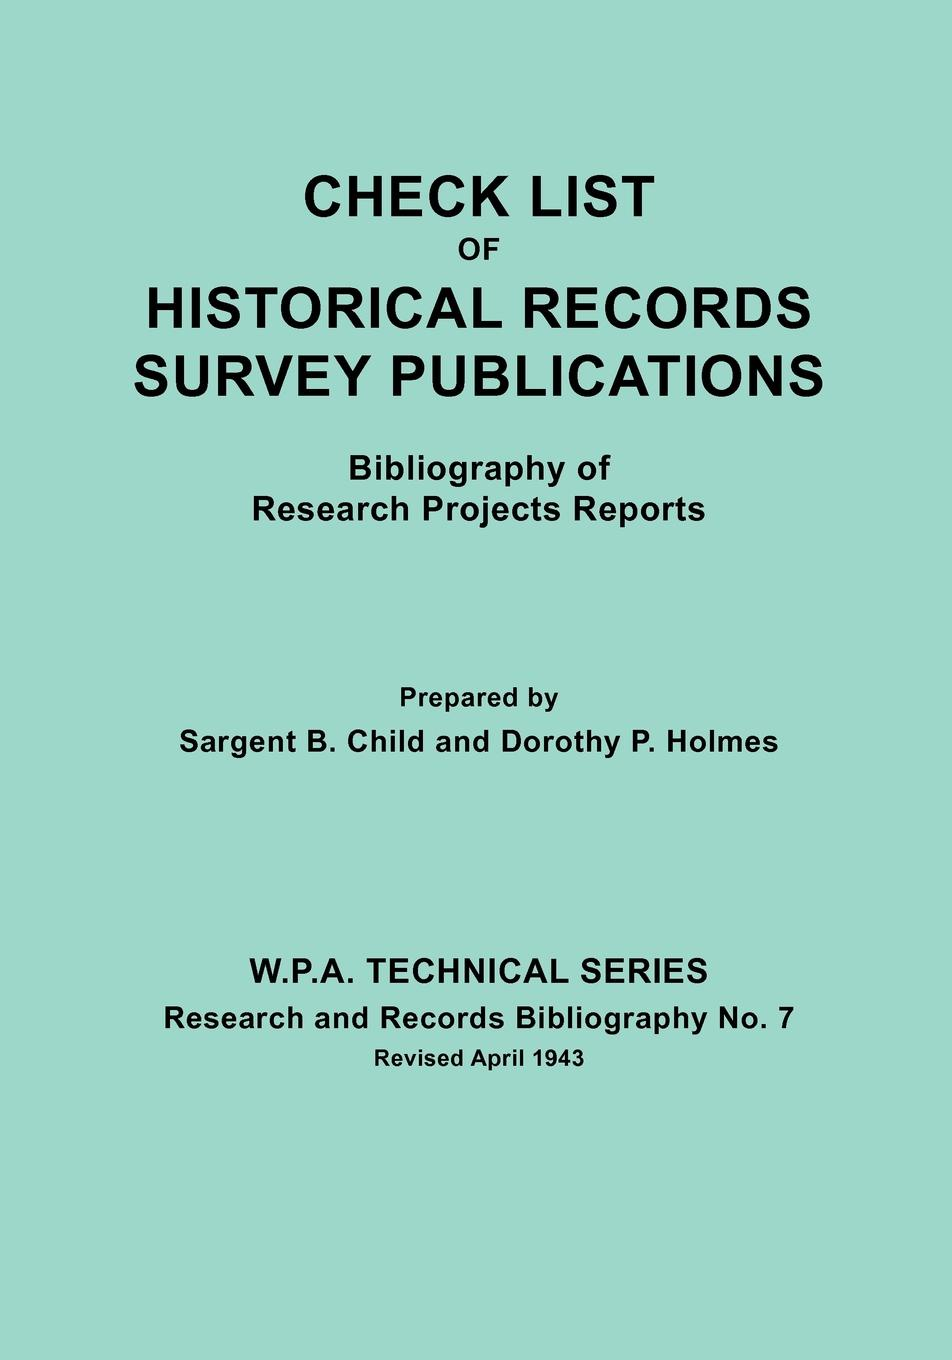 Sargent B. Child, Dorothy P. Holmes Check List of Historical Records Survey Publications. Bibliography Research Projects Preports. W.P.A. Technical Series, and Biblio